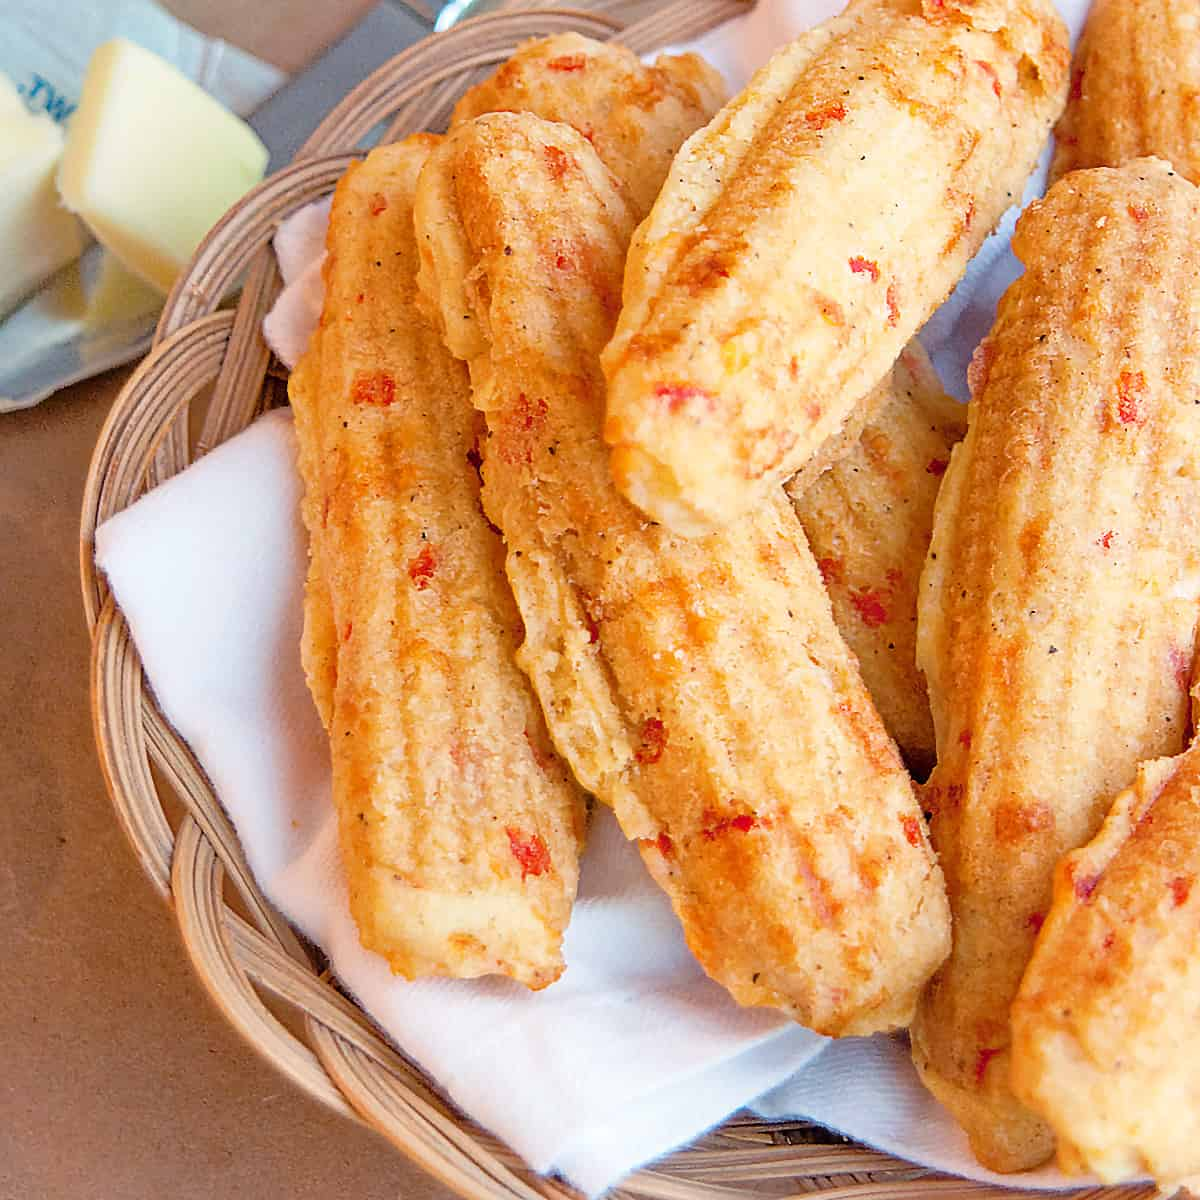 Pimiento Cheese Corn Sticks in a basket with a knife and butter to the side.